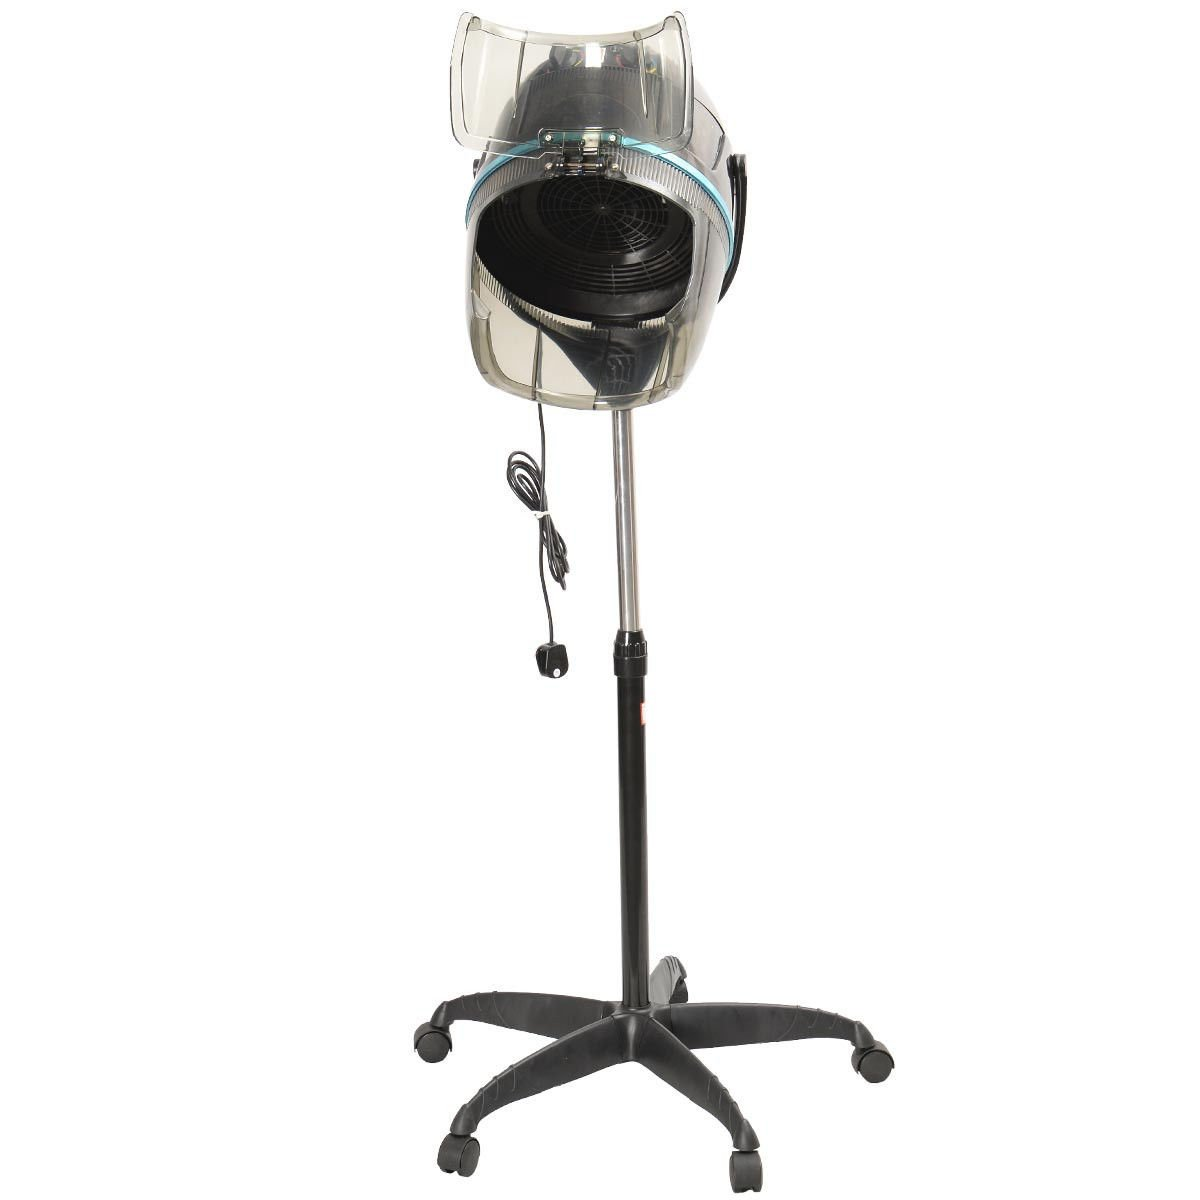 KCHEX>>>Adjustable Stand Up Hood Floor Hair Bonnet Dryer Rolling Base Salon Wheels New>This is our Professional hair dryer, which is height adjustable, swivel casters, and convenient hood door.